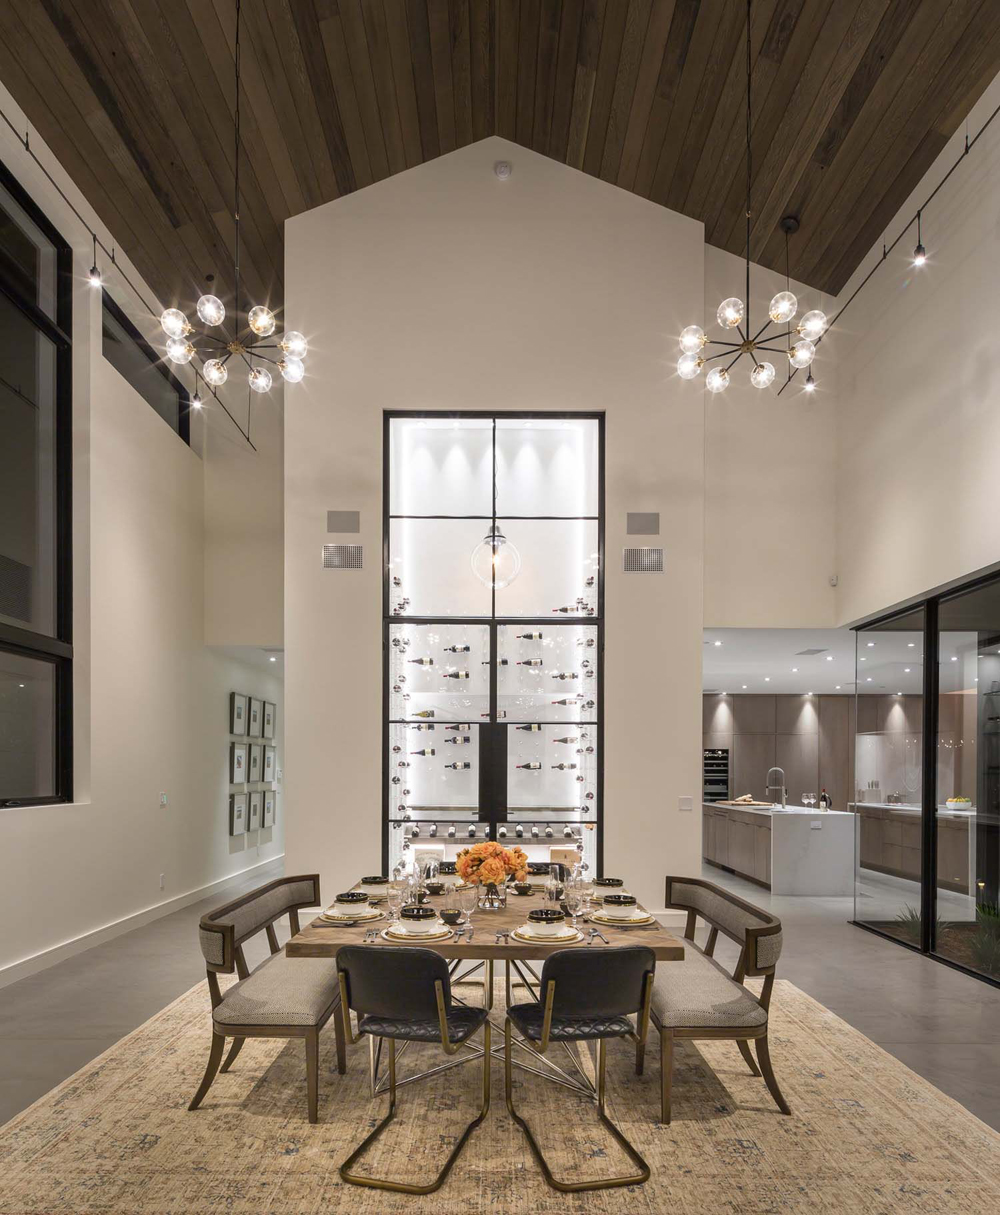 Dining room in a large scale modern farmhouse.